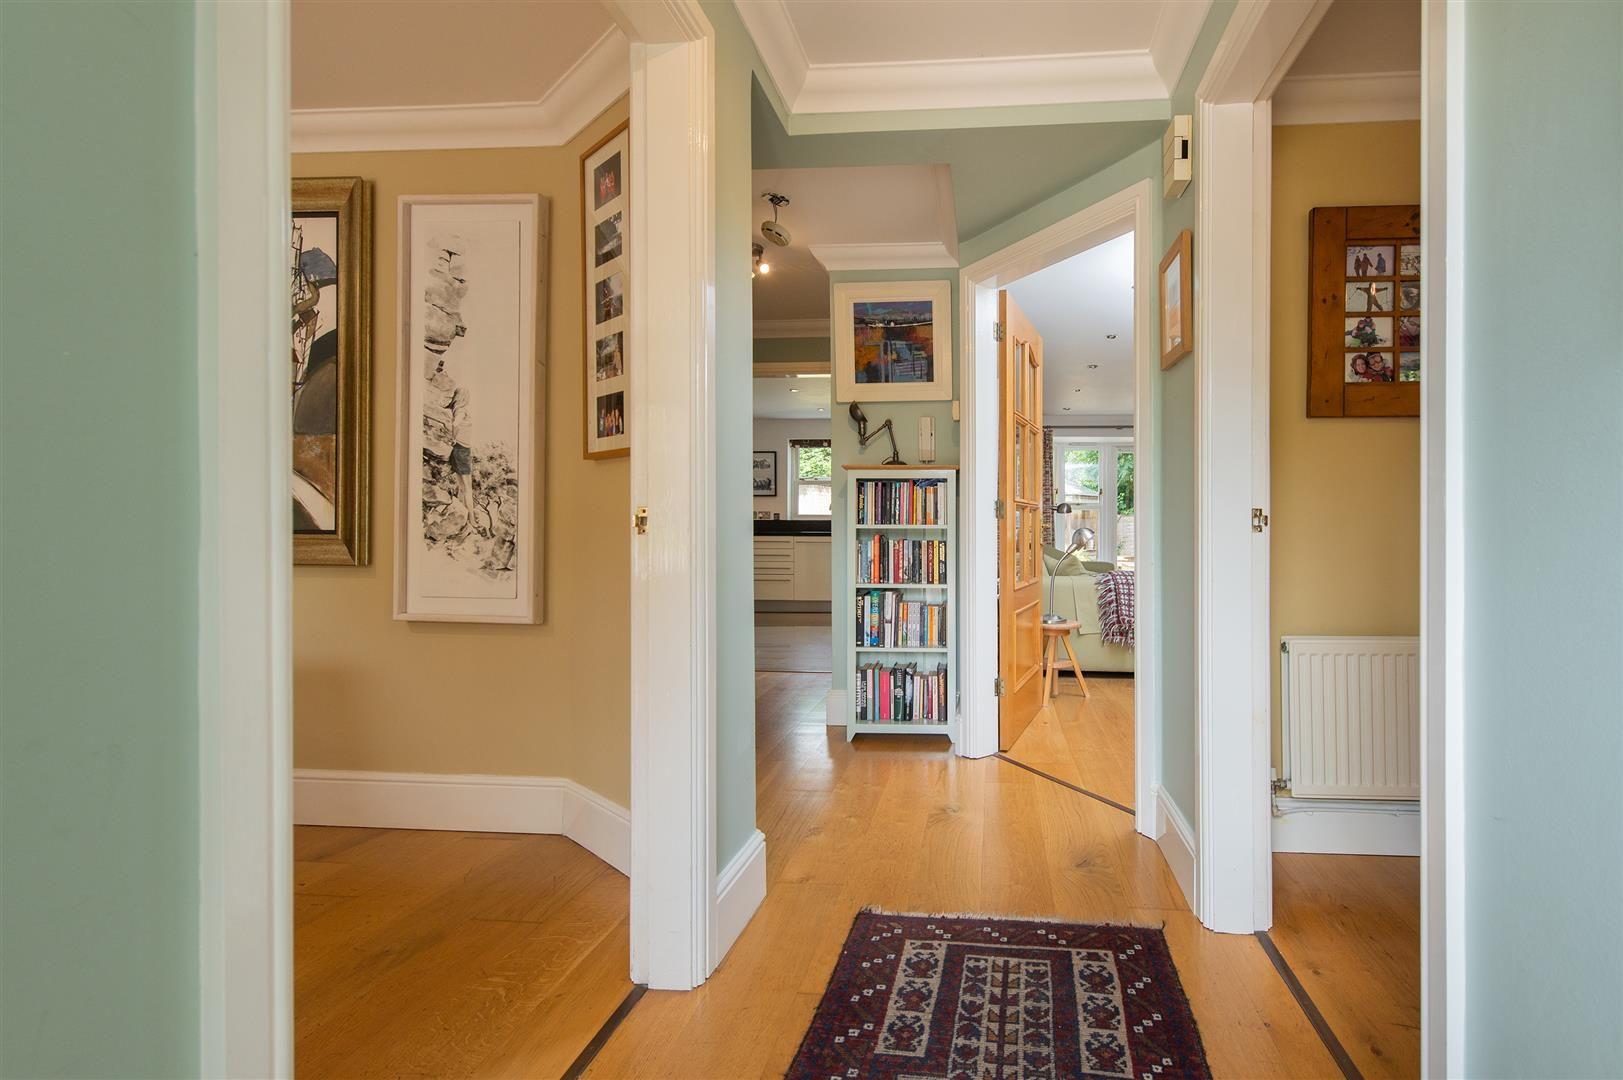 5 bed house for sale in Hagley 4